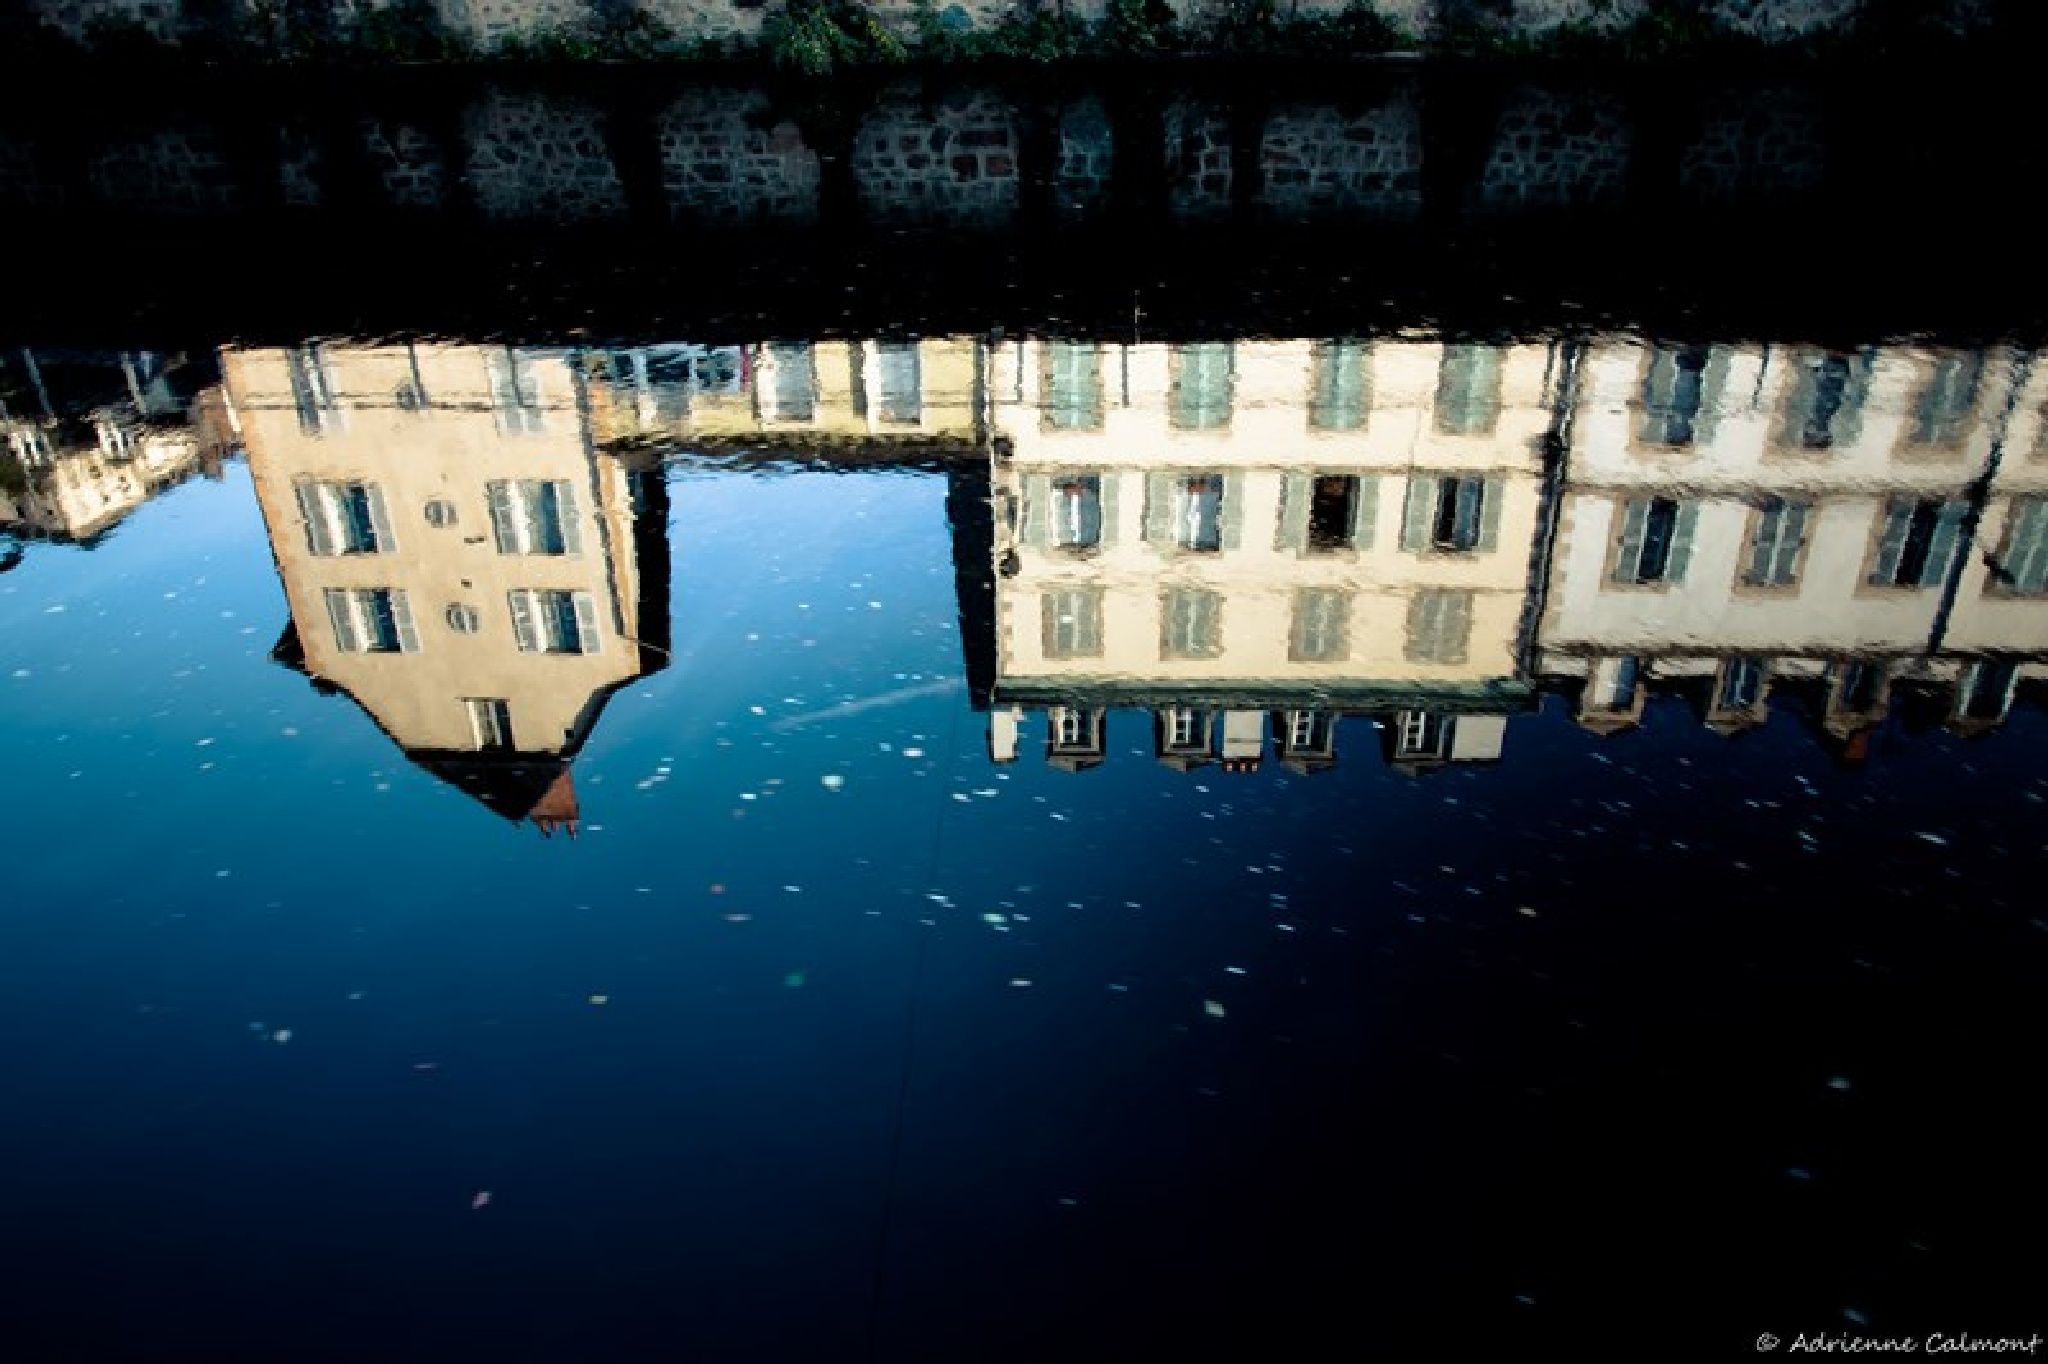 Reflets by Adrienne Calmont